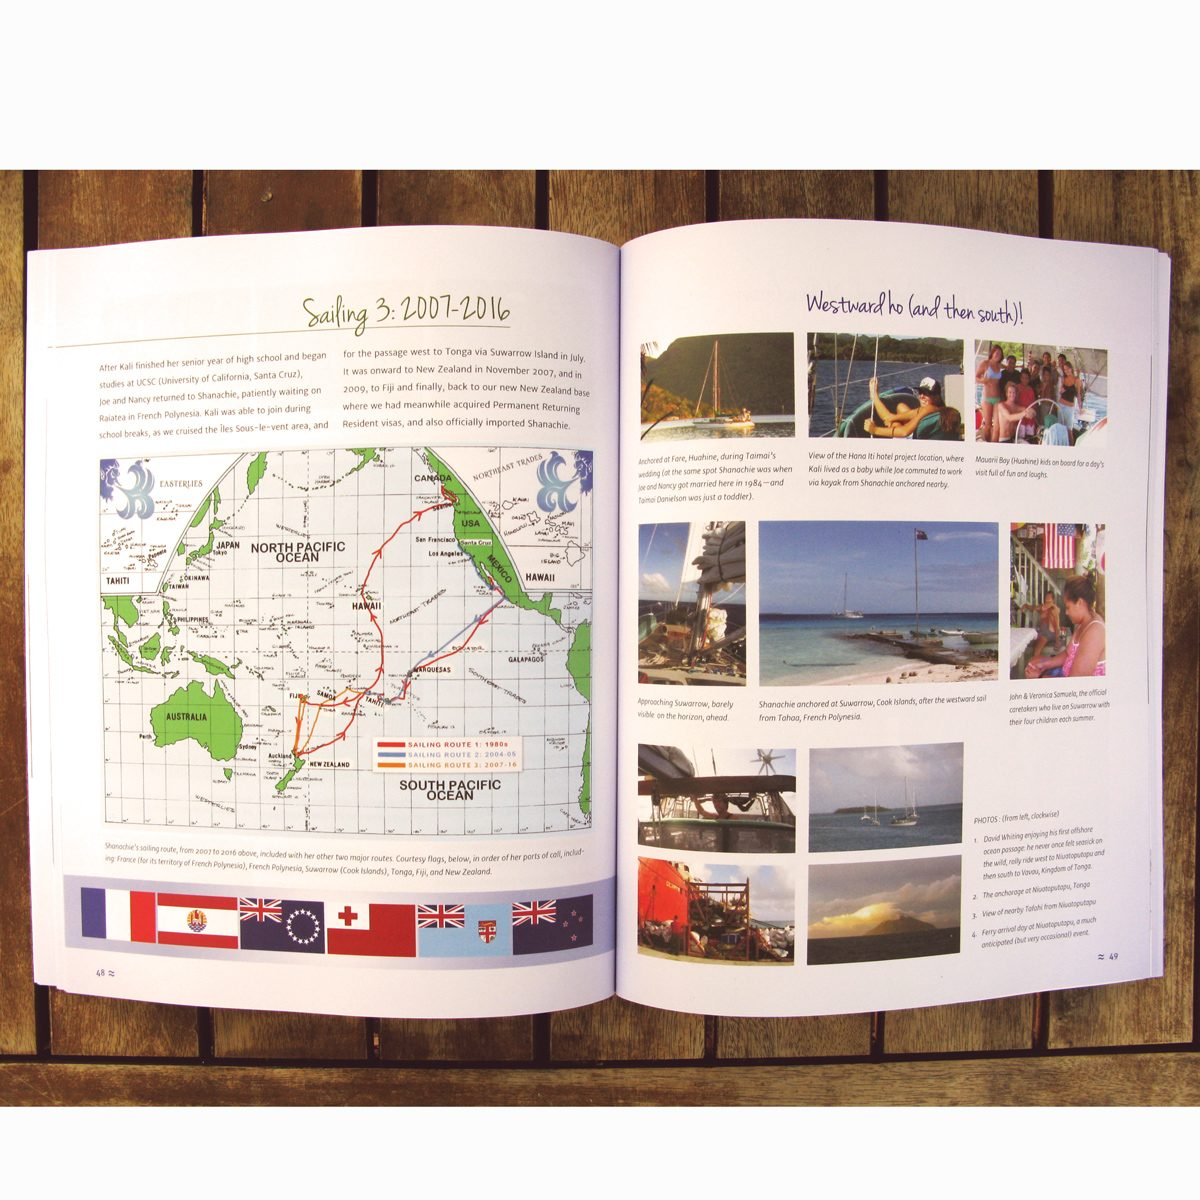 Shanachie: A Wooden Boat Story open to a page spread on sailing routes in the South Pacific